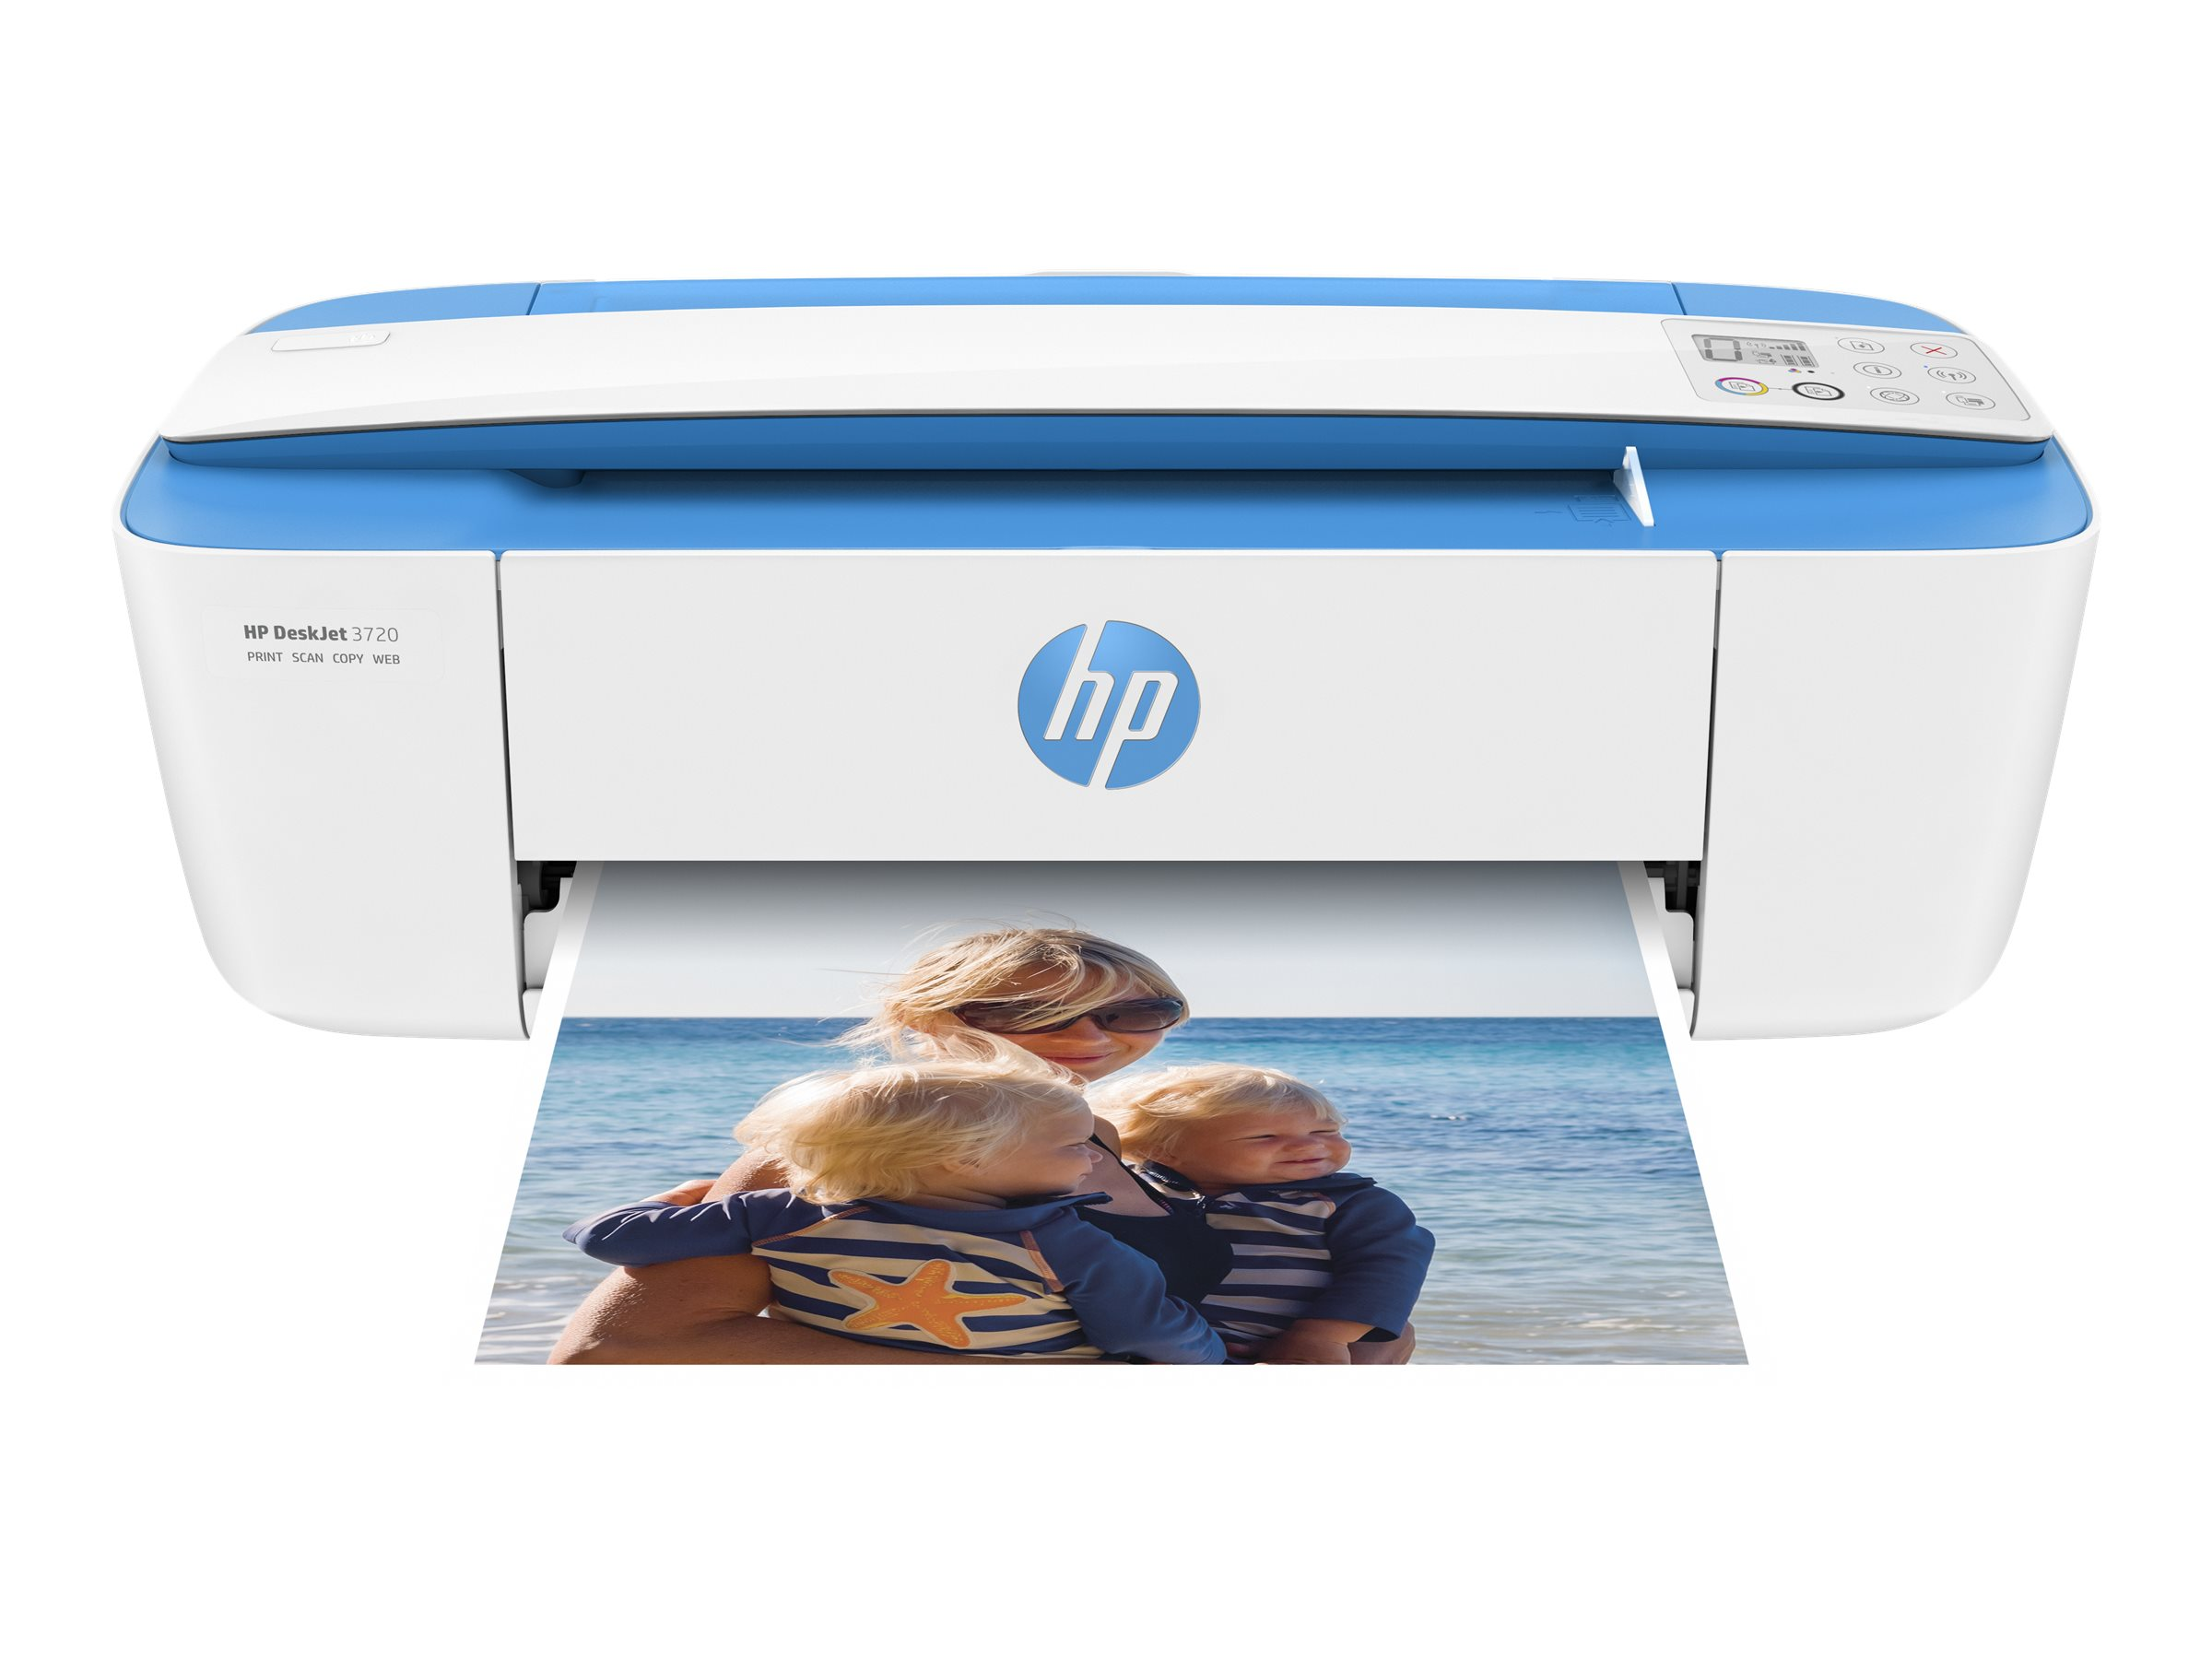 HP Deskjet 3720 All-in-One - Multifunktionsdrucker